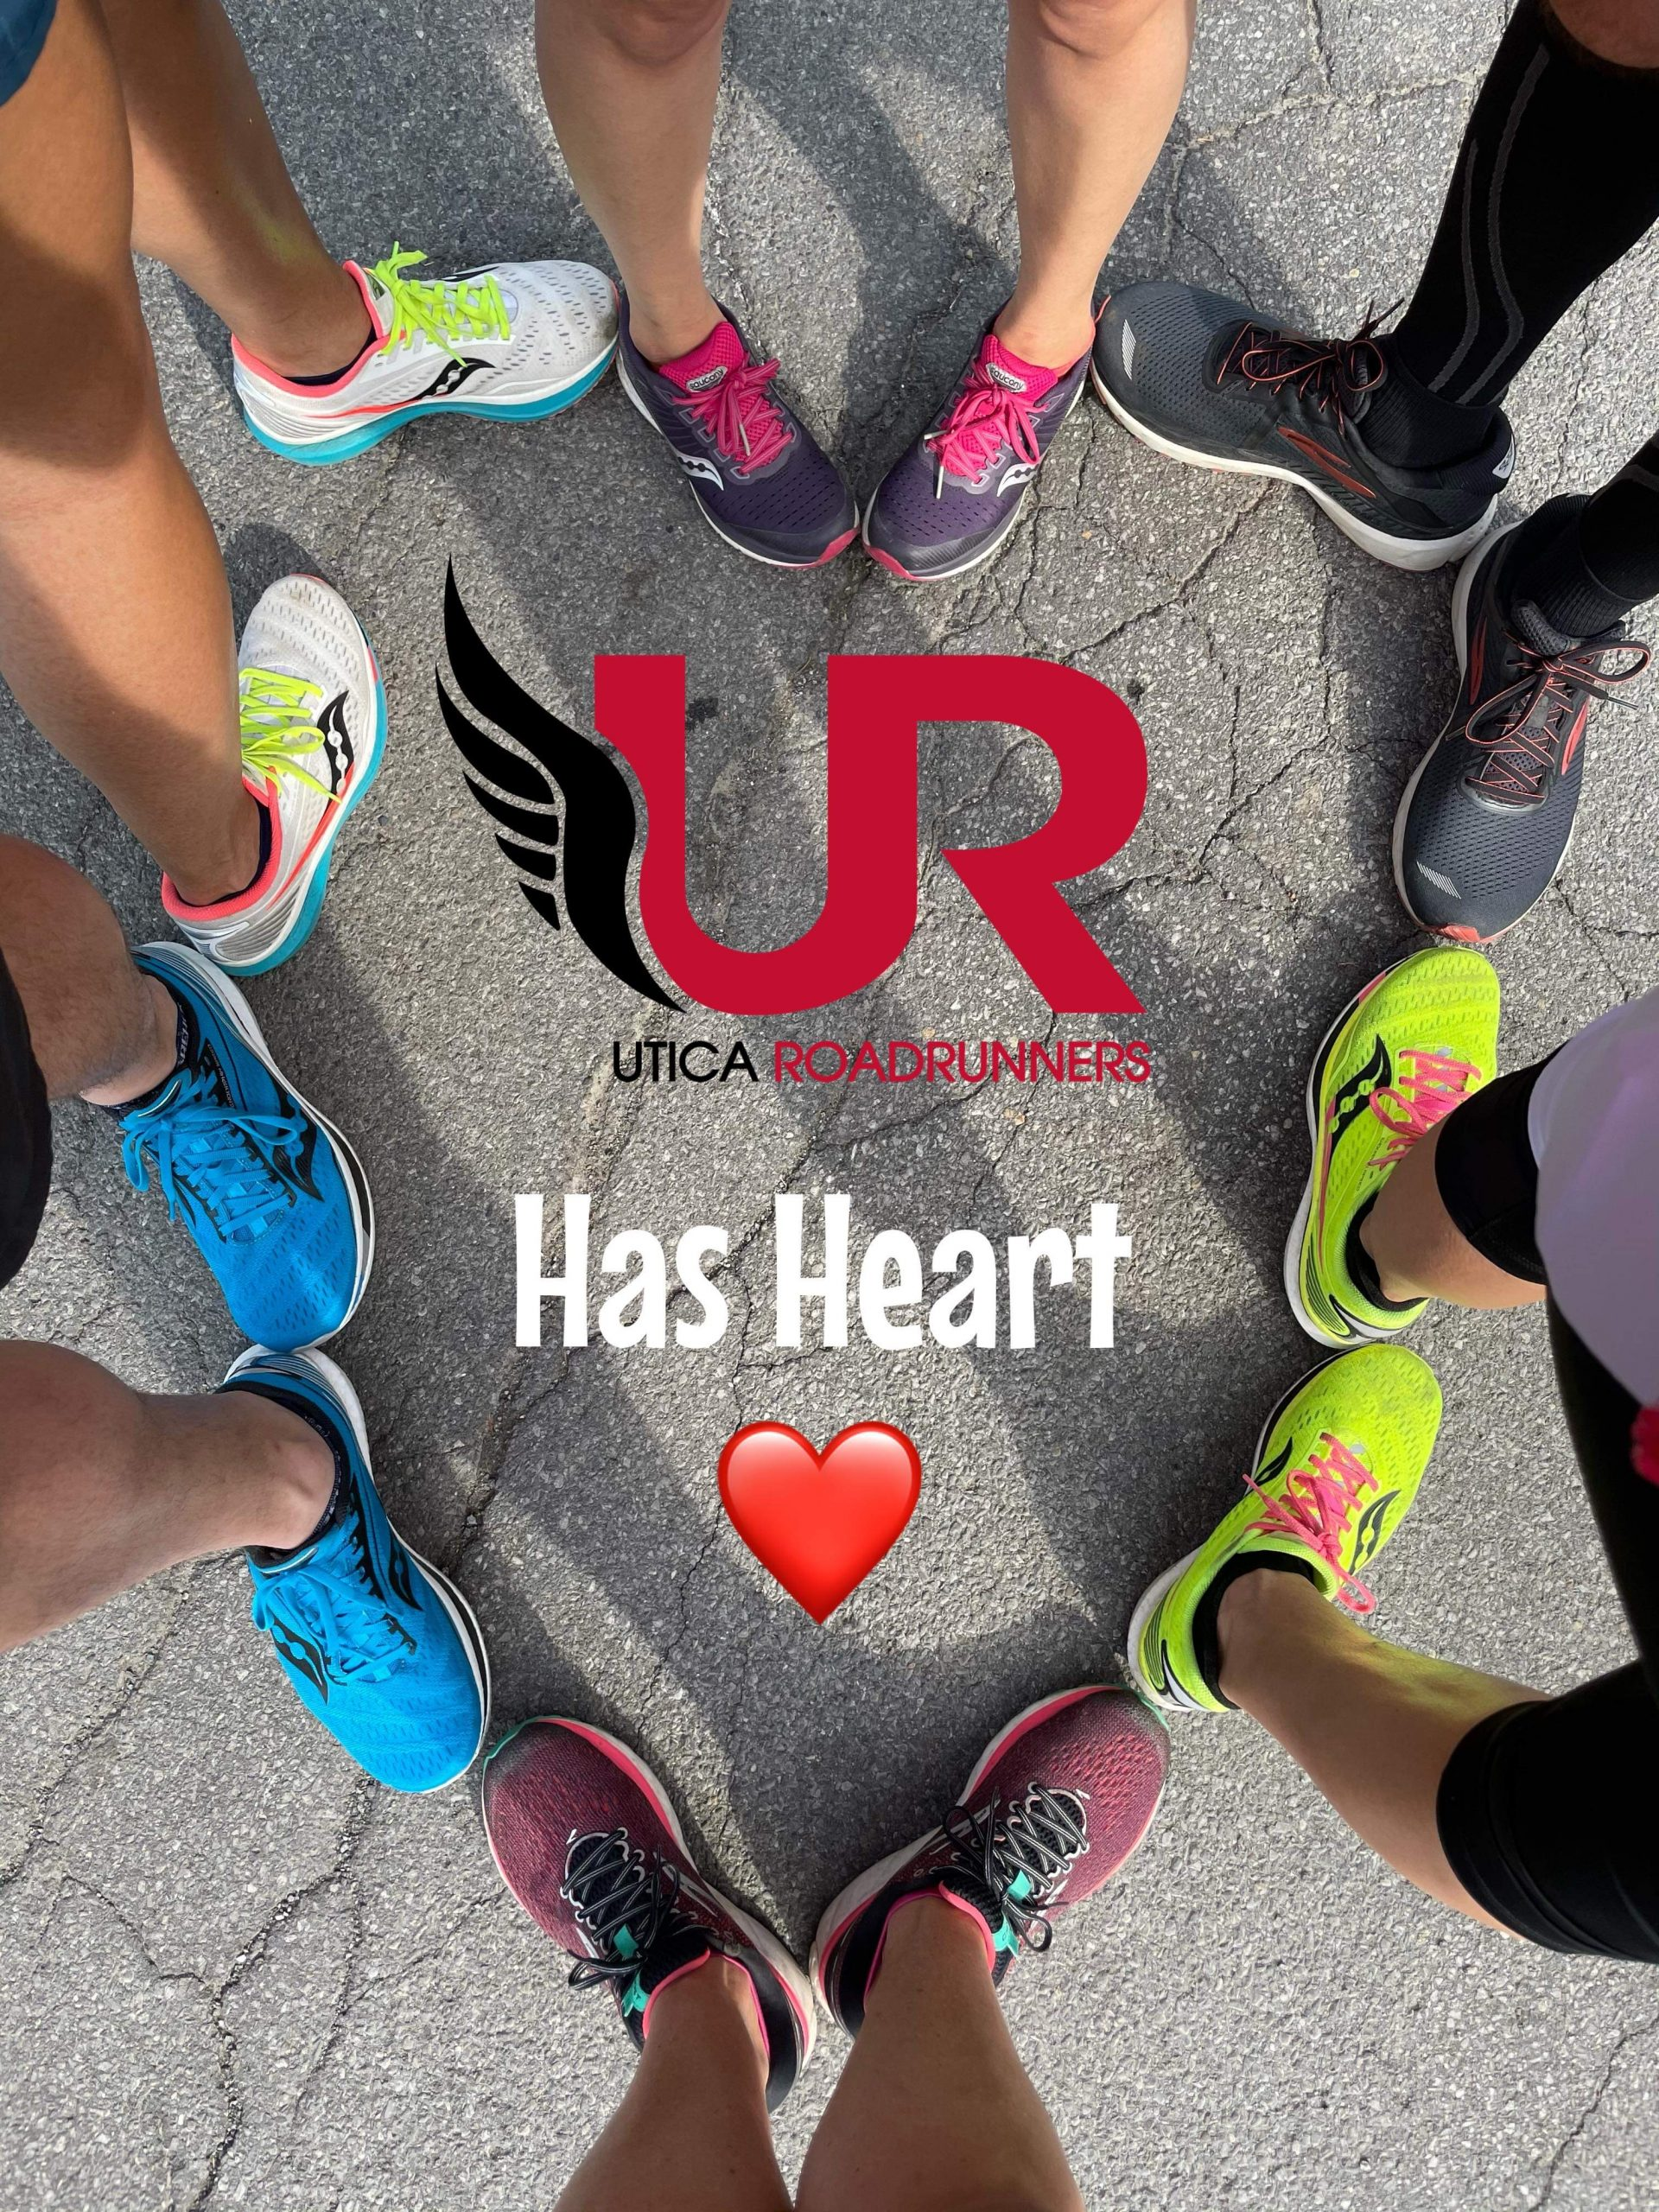 Running shoes lined up in a heart shape